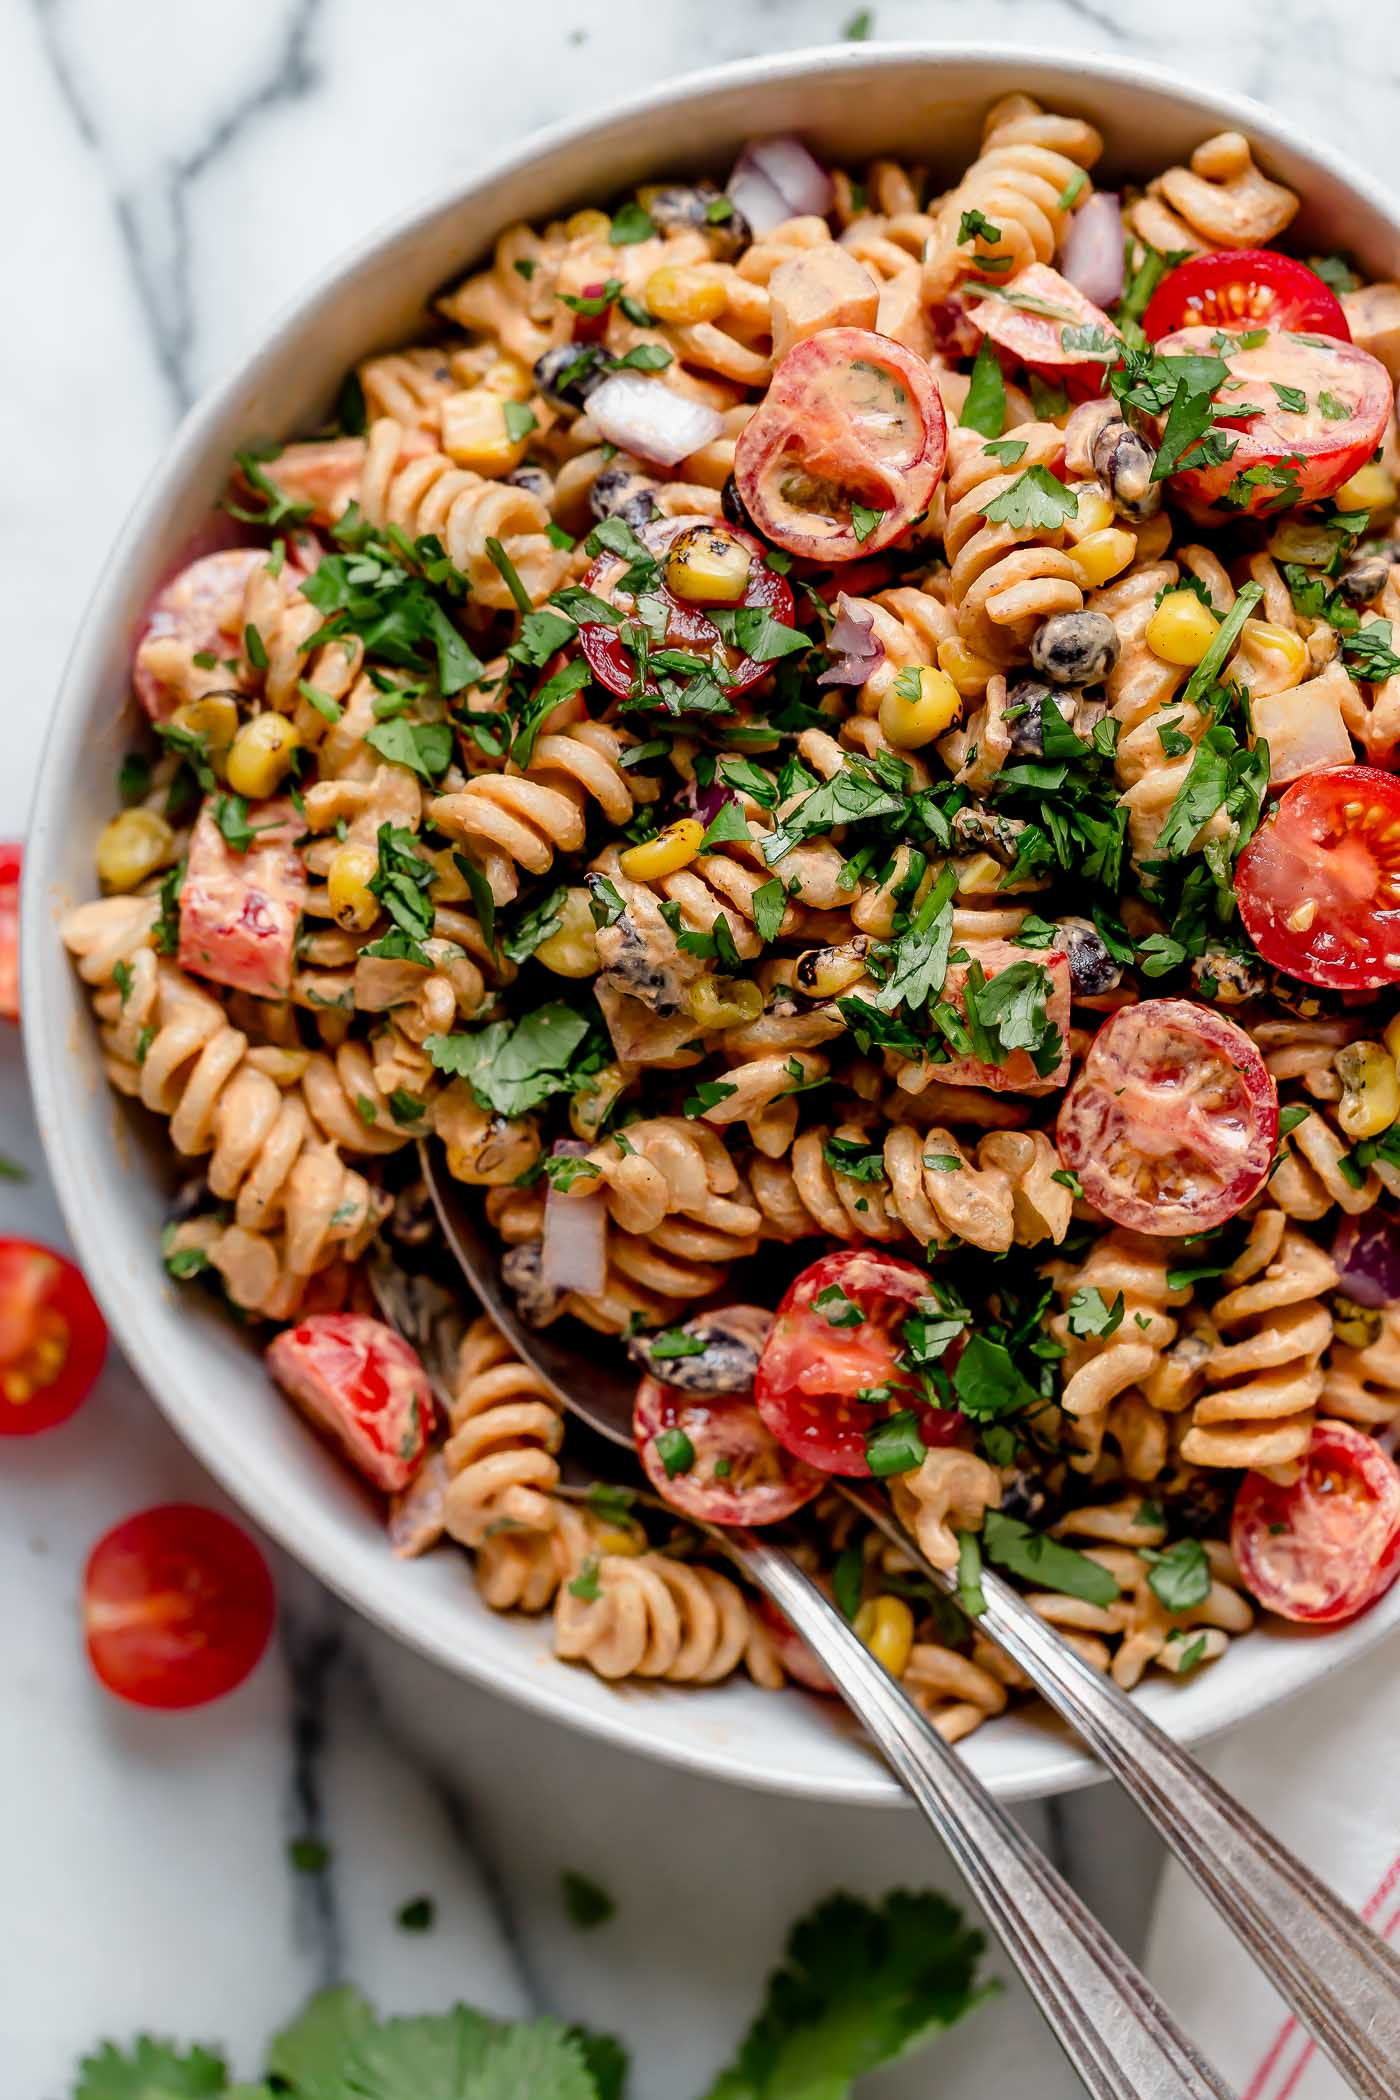 Vegan Southwest Pasta Salad Recipe Make Ahead Plays Well With